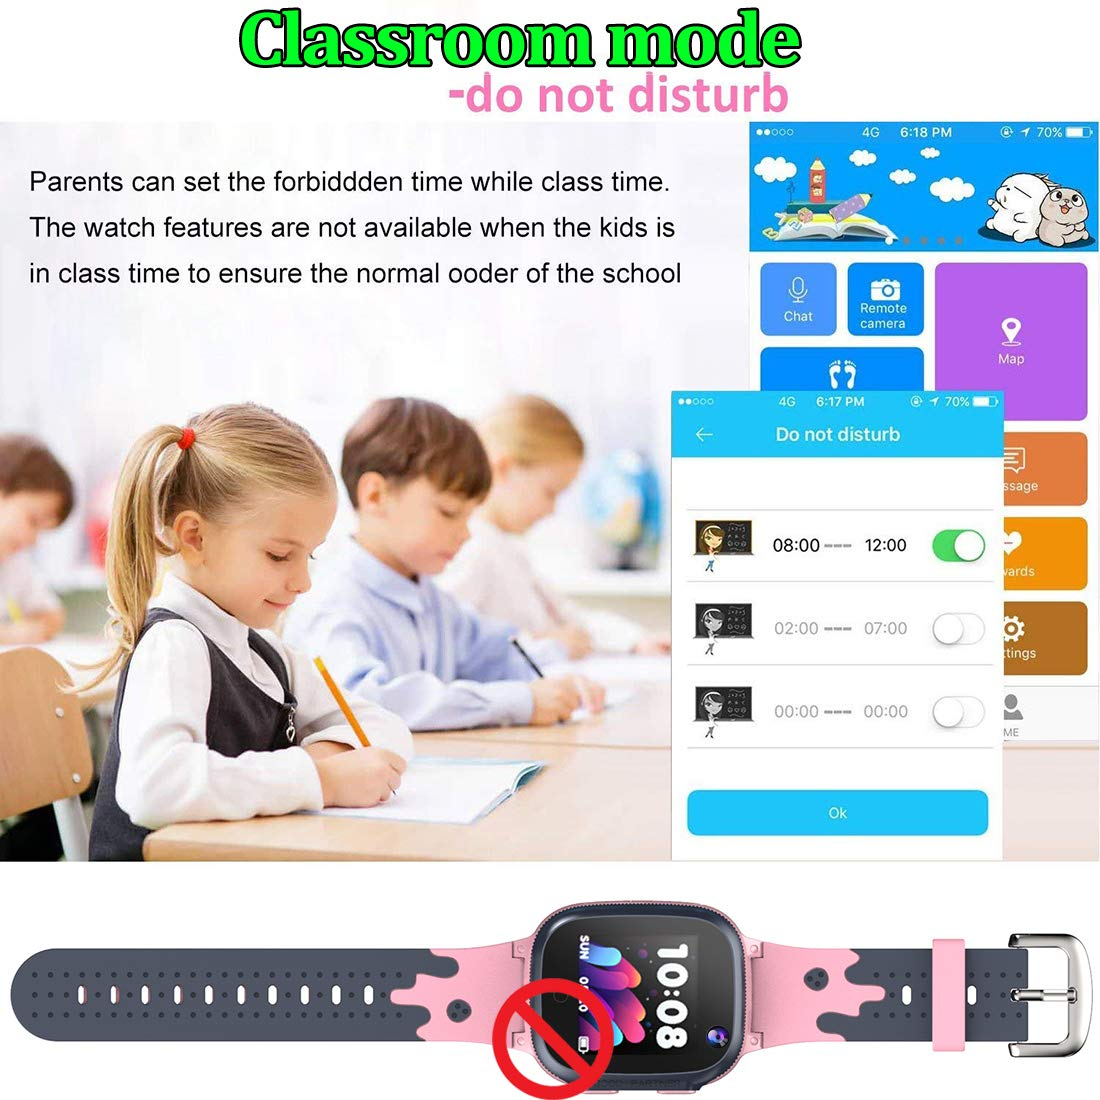 MiKin Children Smart Watches for Girls Boys Age 3-12 Kids Smartwatch Phone with GPS Tracker 2 Way Call SOS Remote Camera Touch Screen Alarm Clock Flashlight Voice Chat Gizmo Wrist Watch Android iOS by MiKin (Image #5)